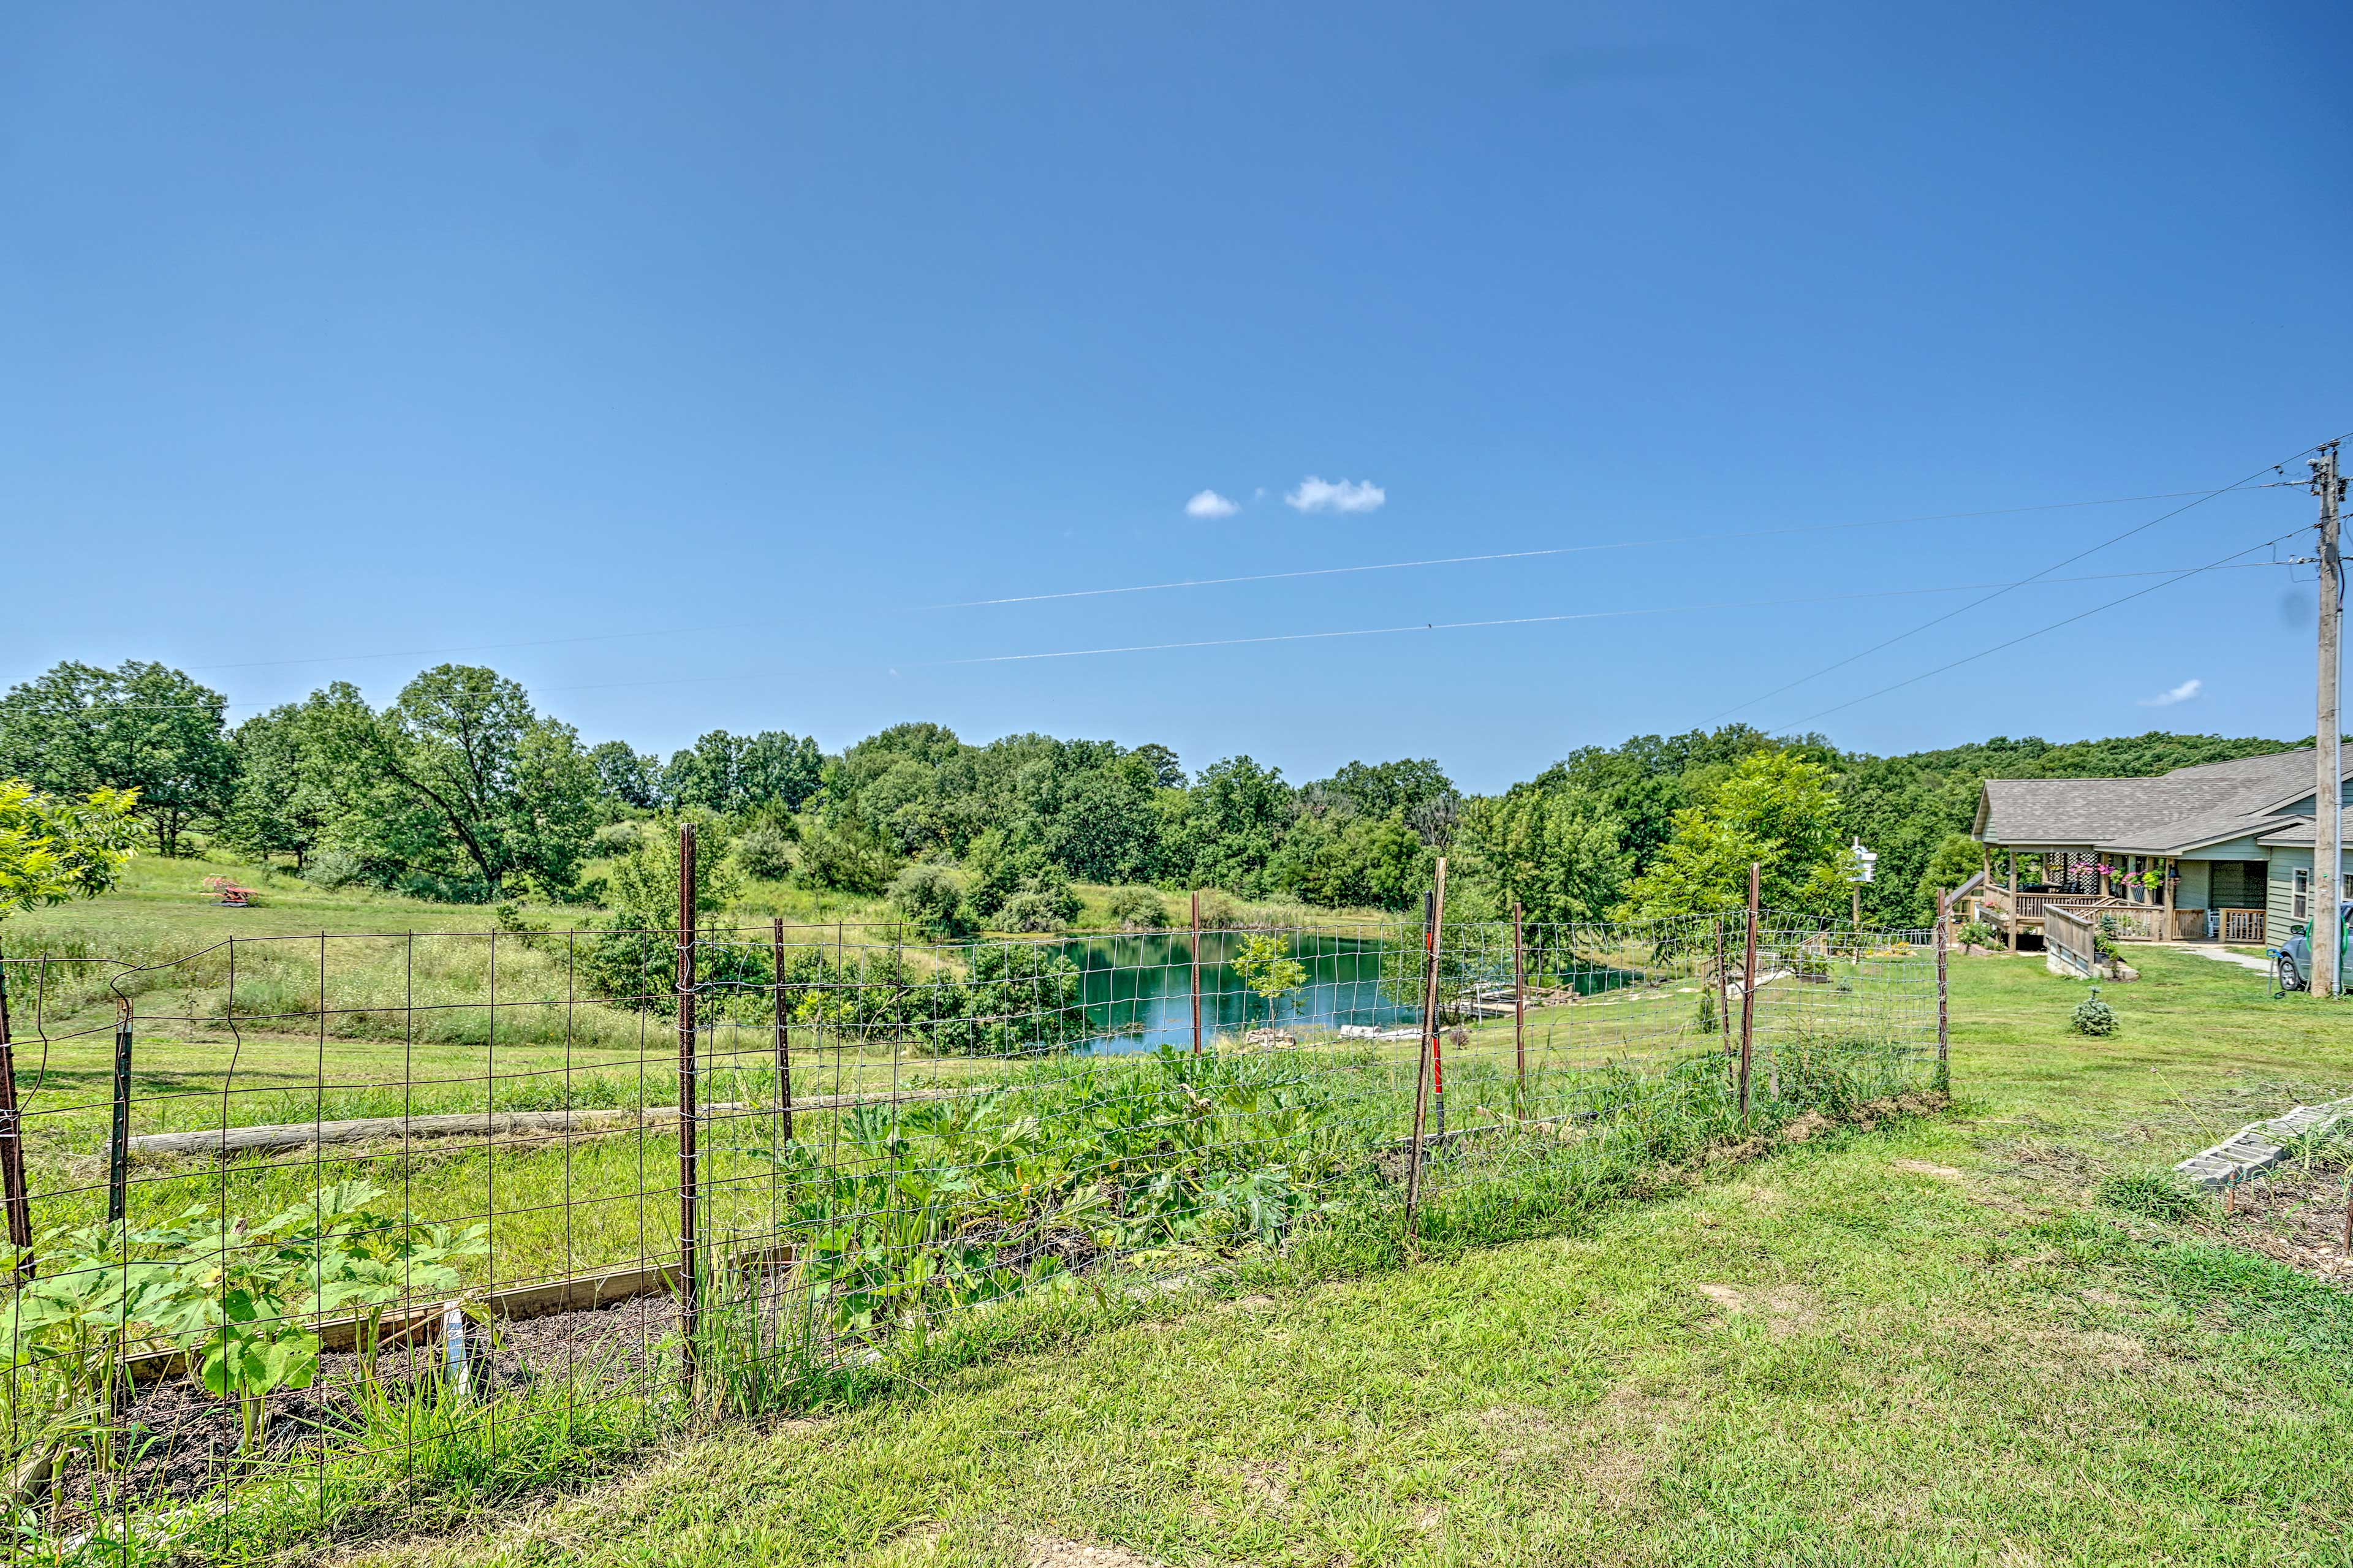 Bucolic dreams become a reality at this working farm.